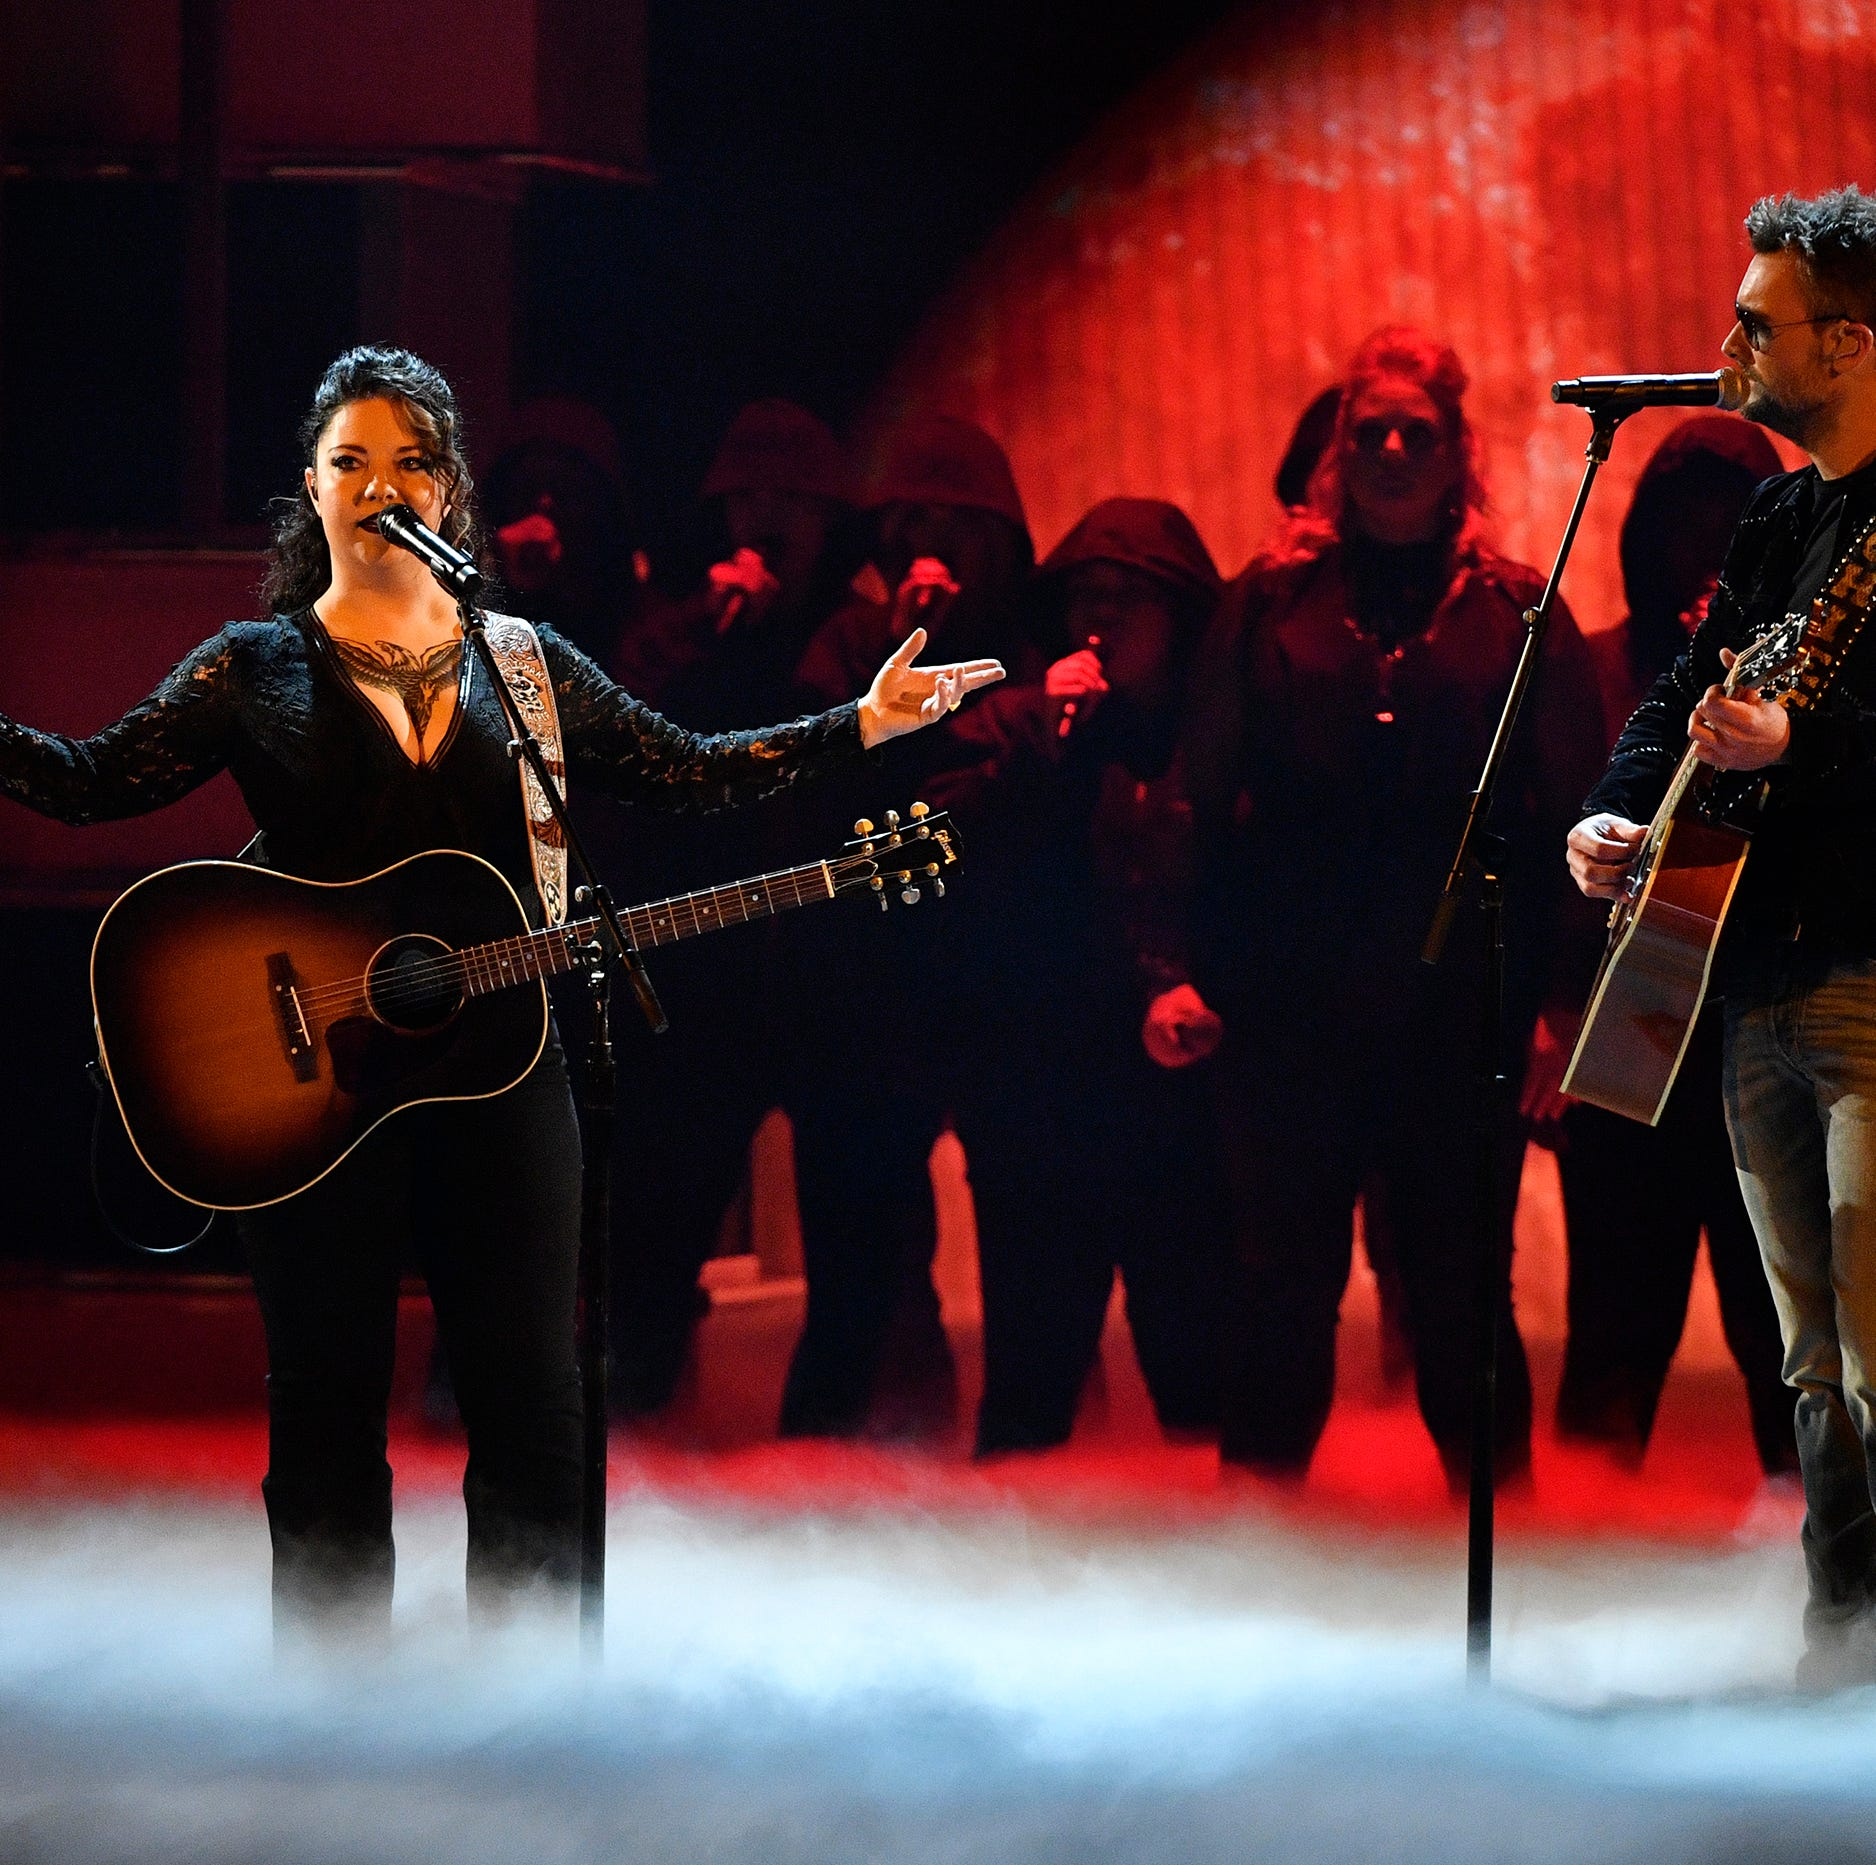 ACM Awards: 8 standout moments from the show